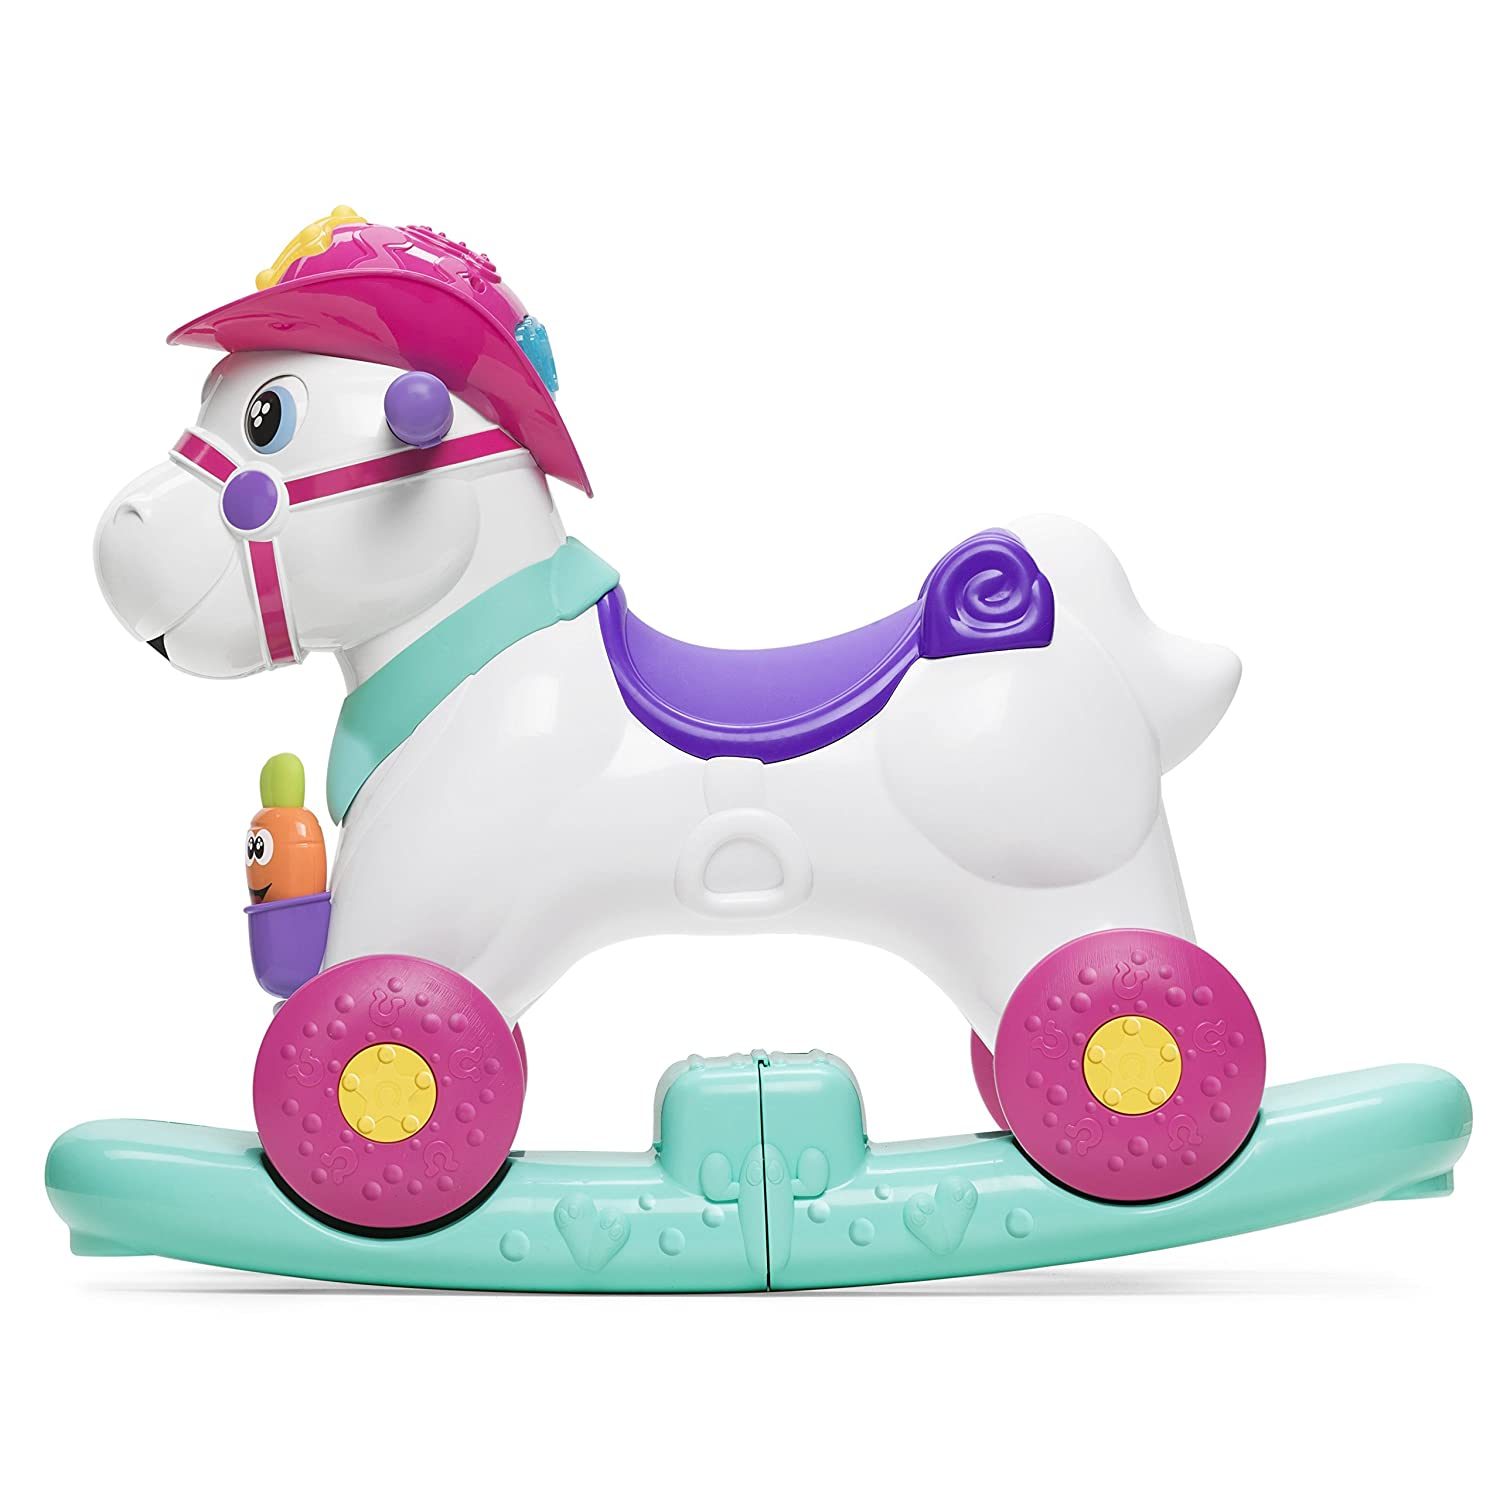 Chicco-00007907100000 Caballito cabalgable, (00007907100000)